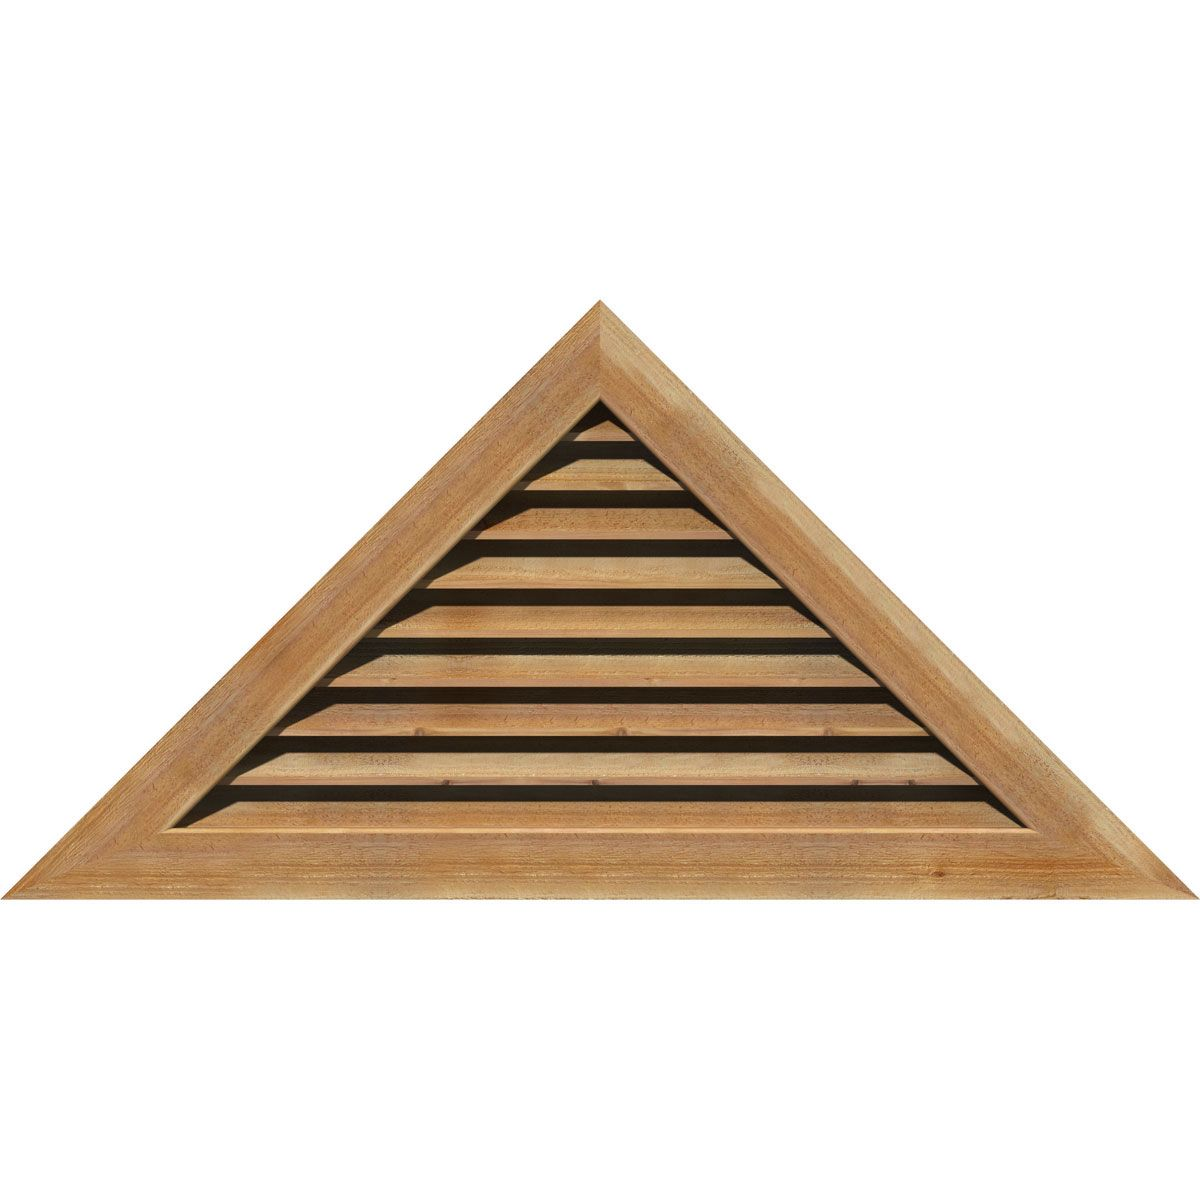 40 Inch W X 11 5 8 Inch H Triangle Gable Vent 58 1 2 Inch W X 17 Inch H Frame Size 7 12 Pitch Unfinished Functional Rough Sawn Western Red Cedar Gable Vent Gable Vents Brick